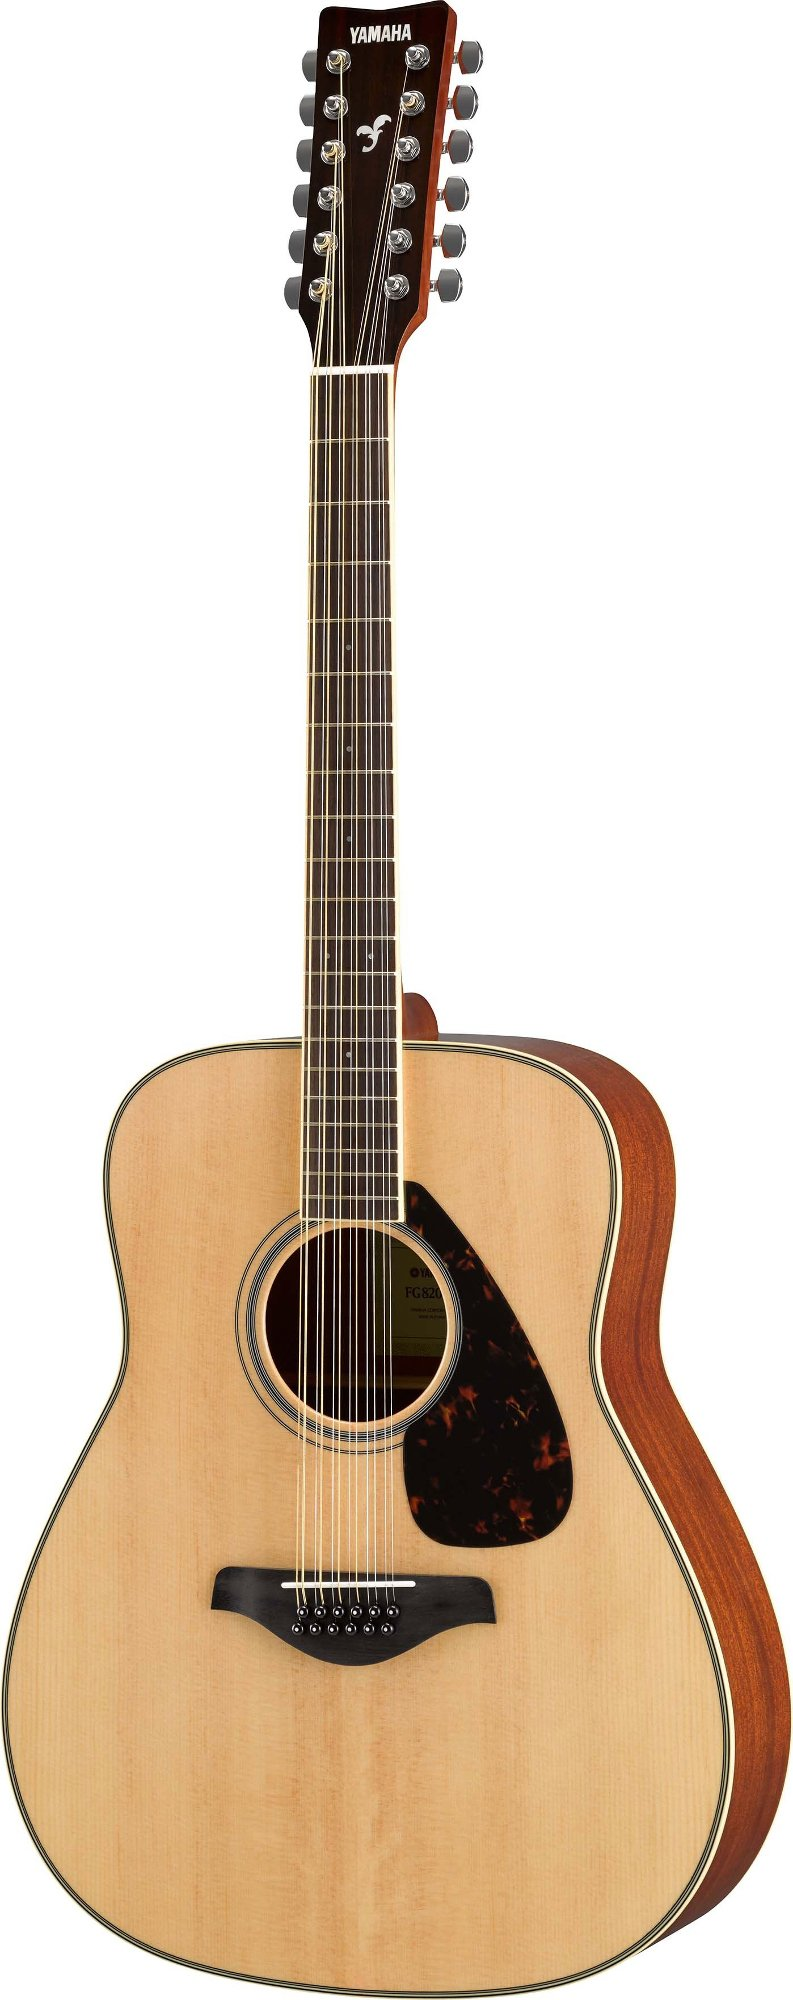 12-String Acoustic Guitar with Solid Spruce Top, Mahogany Back & Sides